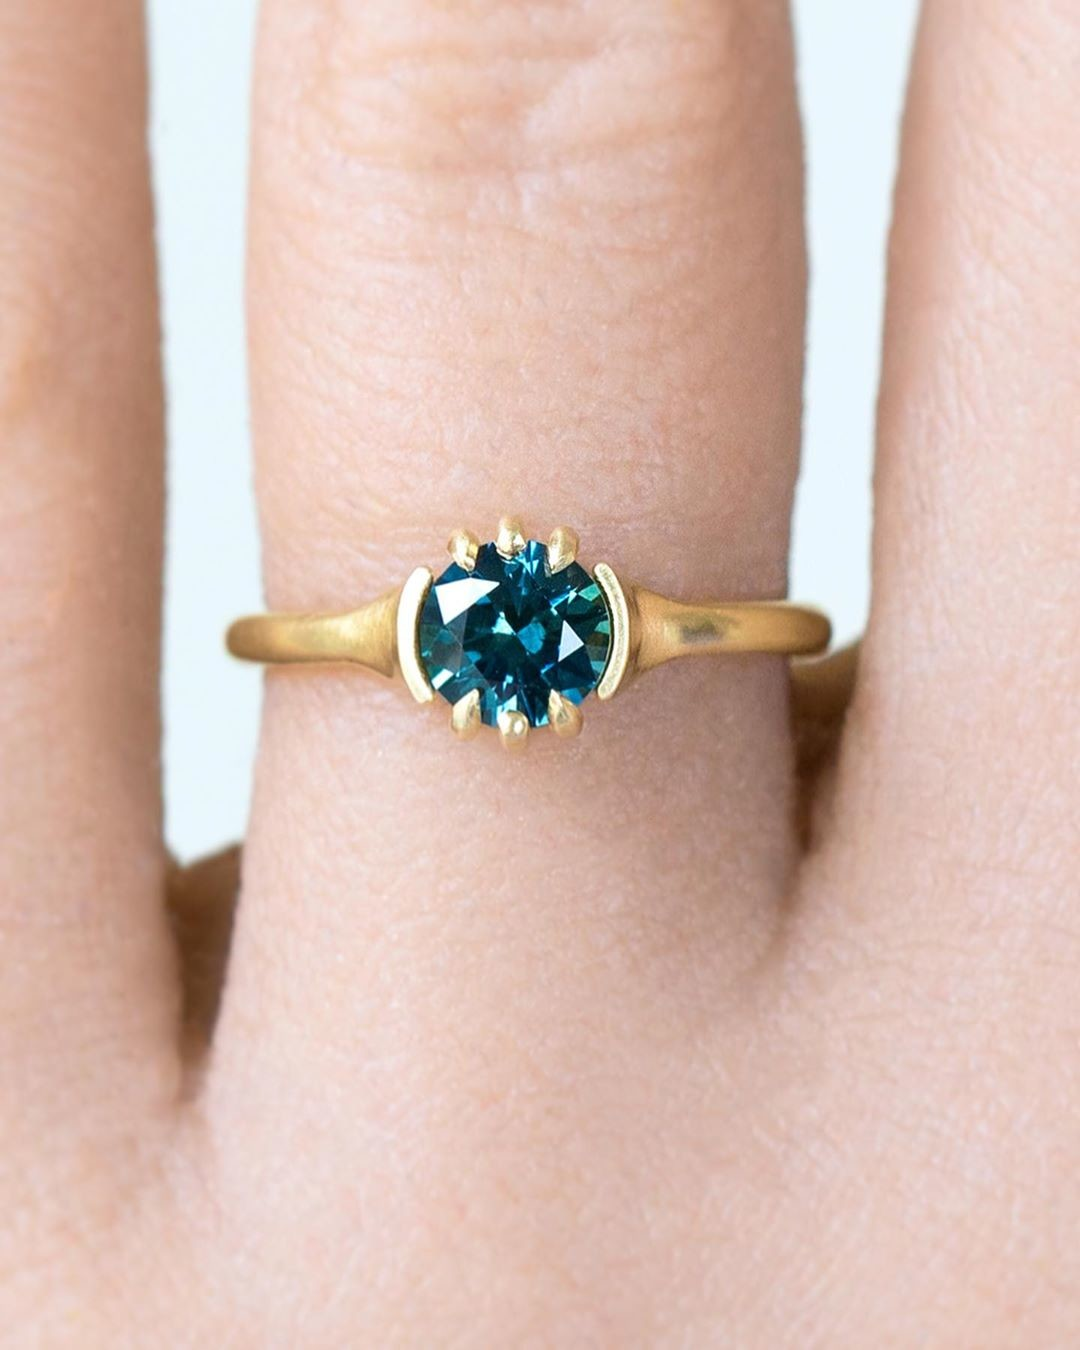 Teal Master Cut 6mm Montana Sapphire + Recycled 18k Gold Custom Sculpted Solitaire = Unique Minimal Contemporary Ring Dream.